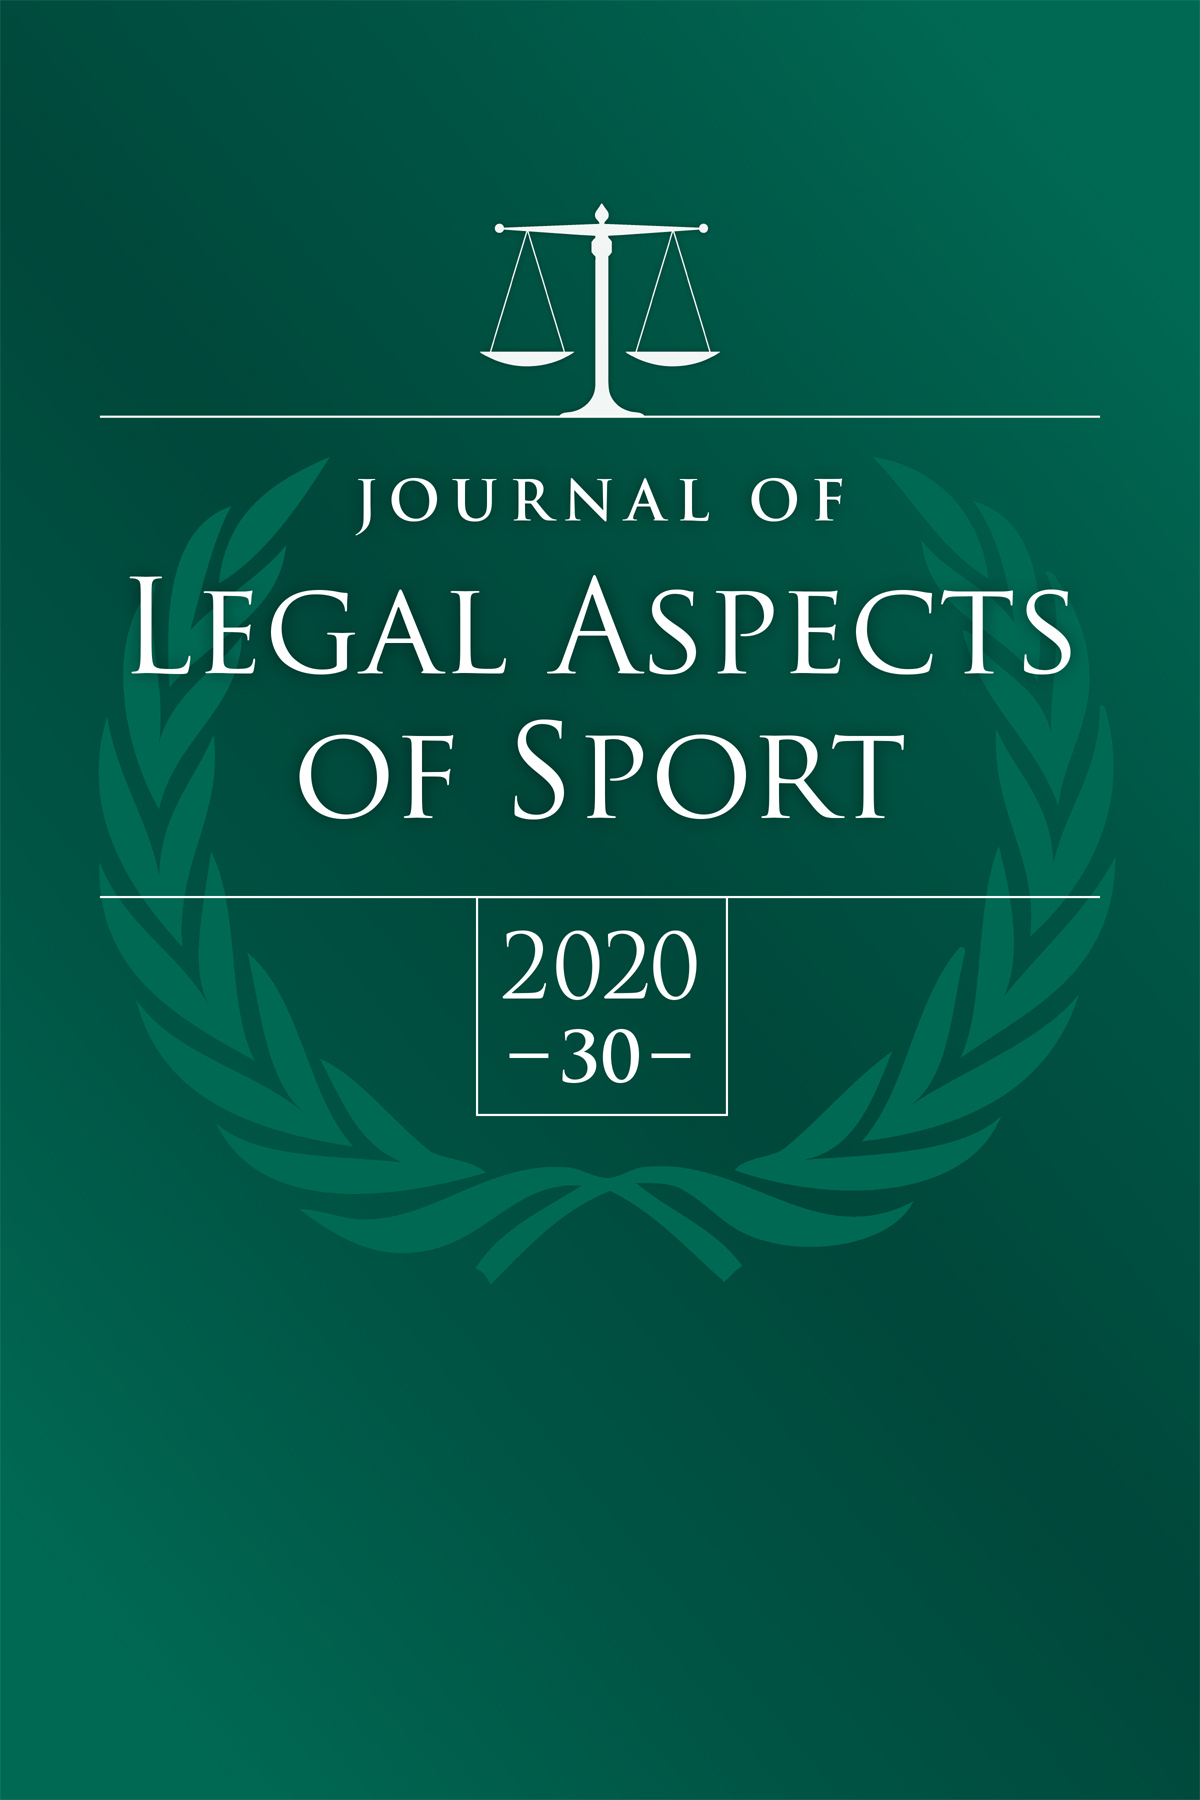 Journal of Legal Aspects of Sport cover